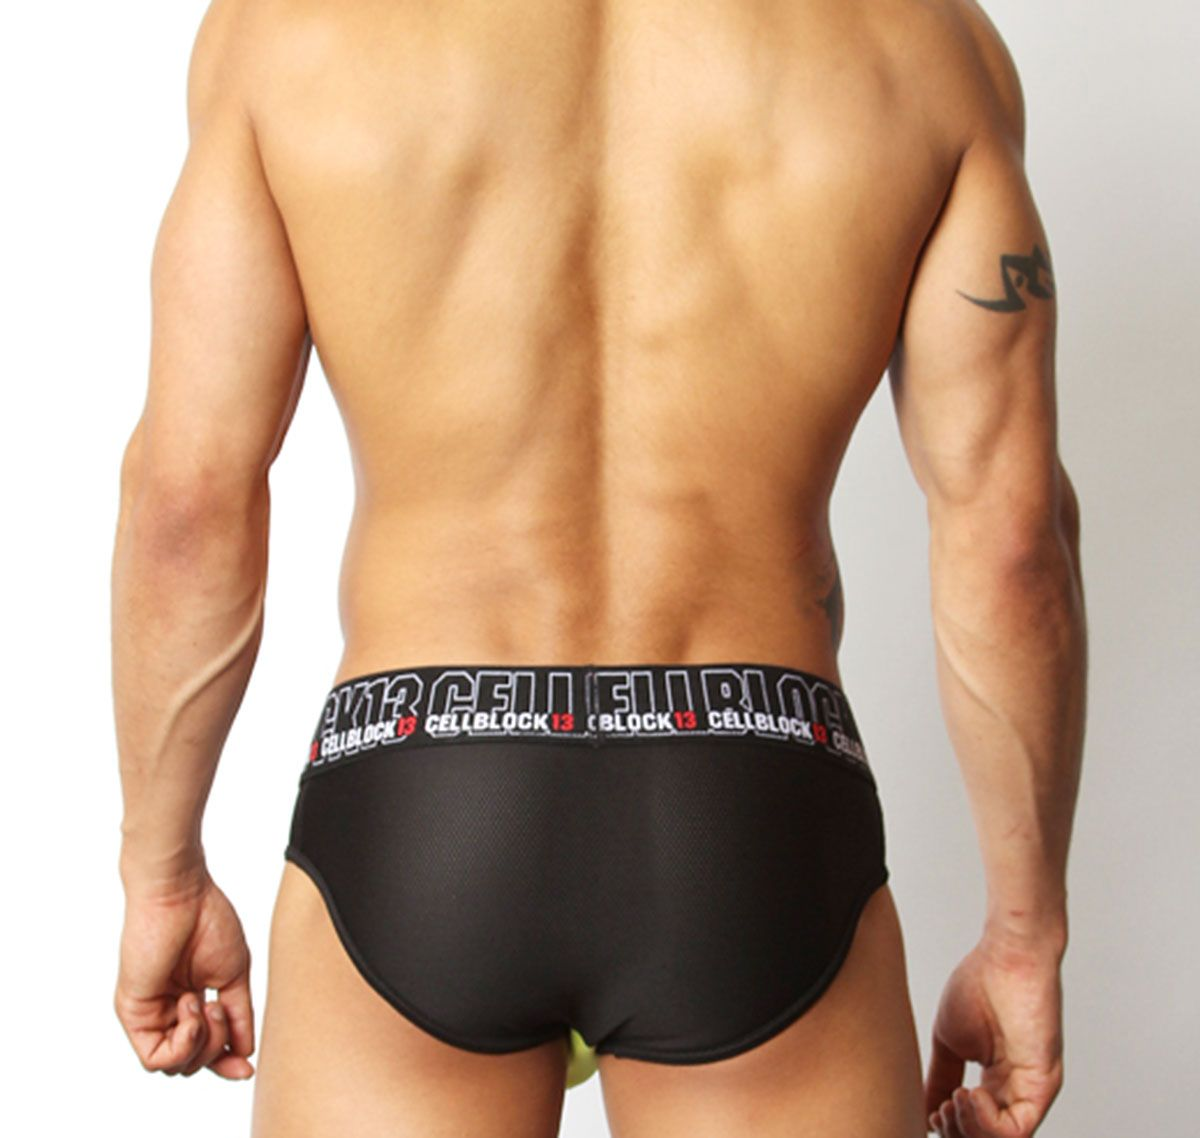 Cellblock 13 Slip BACK ALLEY BRIEF, giallo